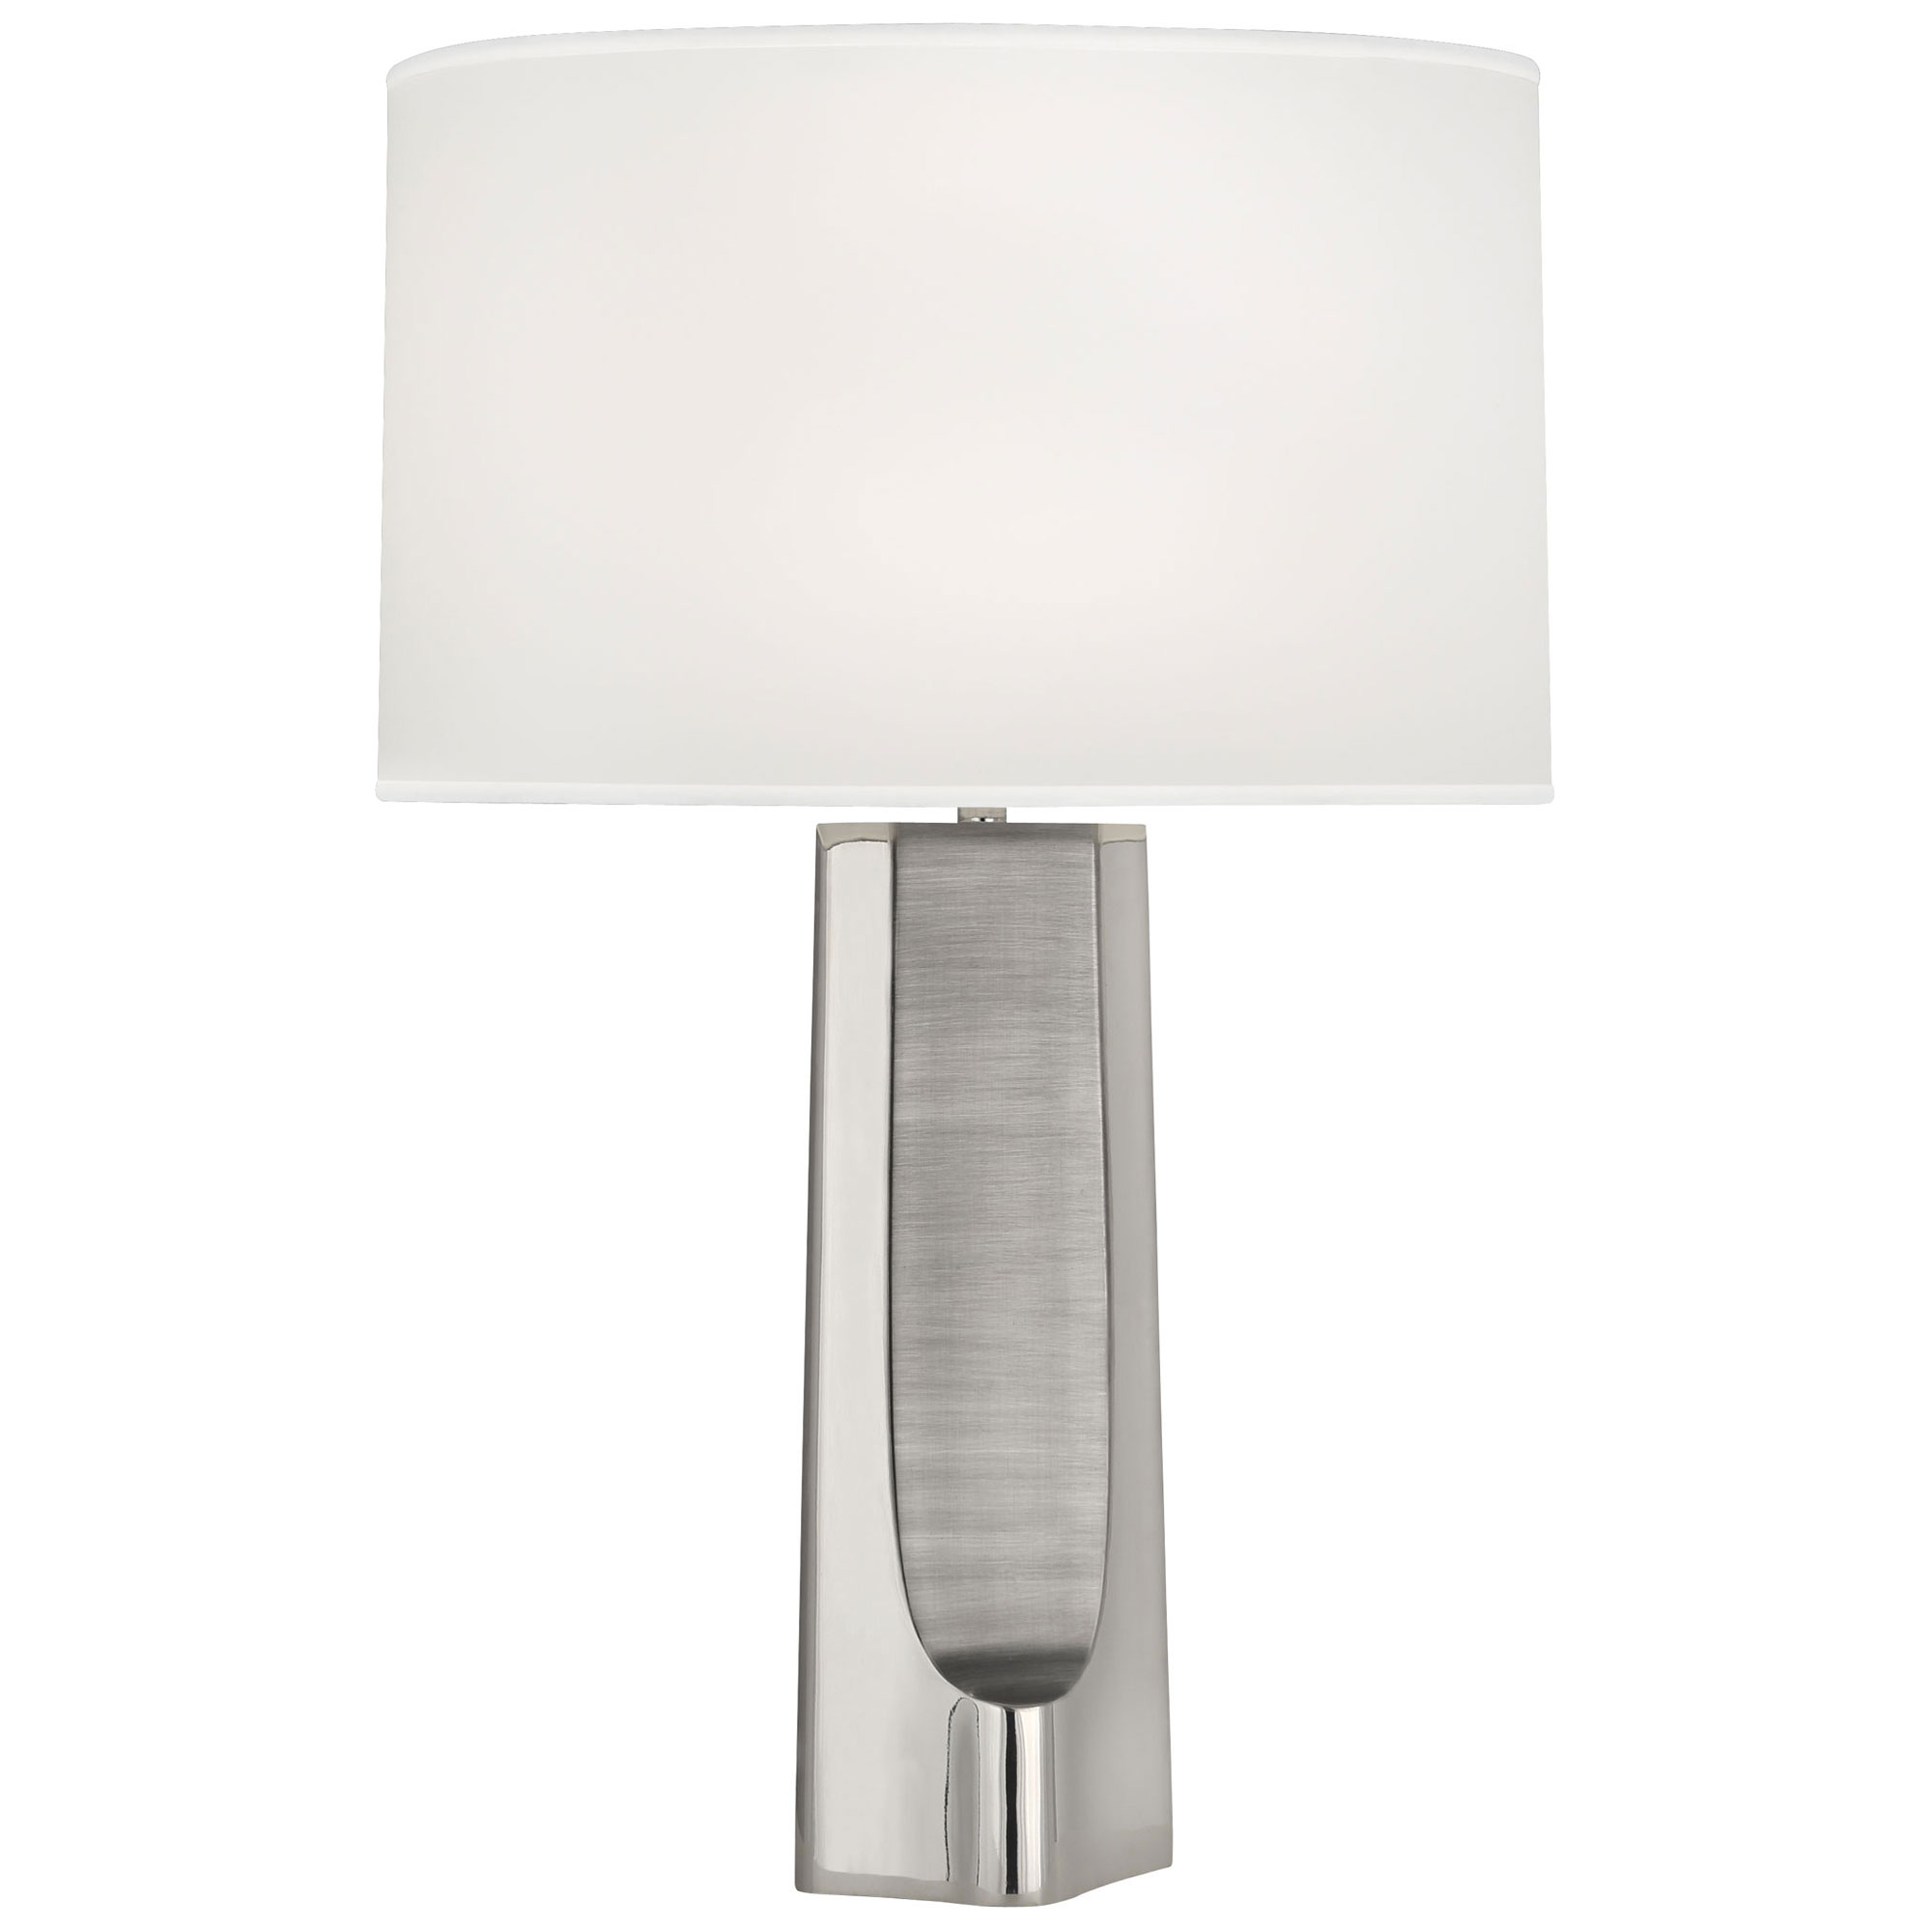 Margeaux Table Lamp Open Box By Robert